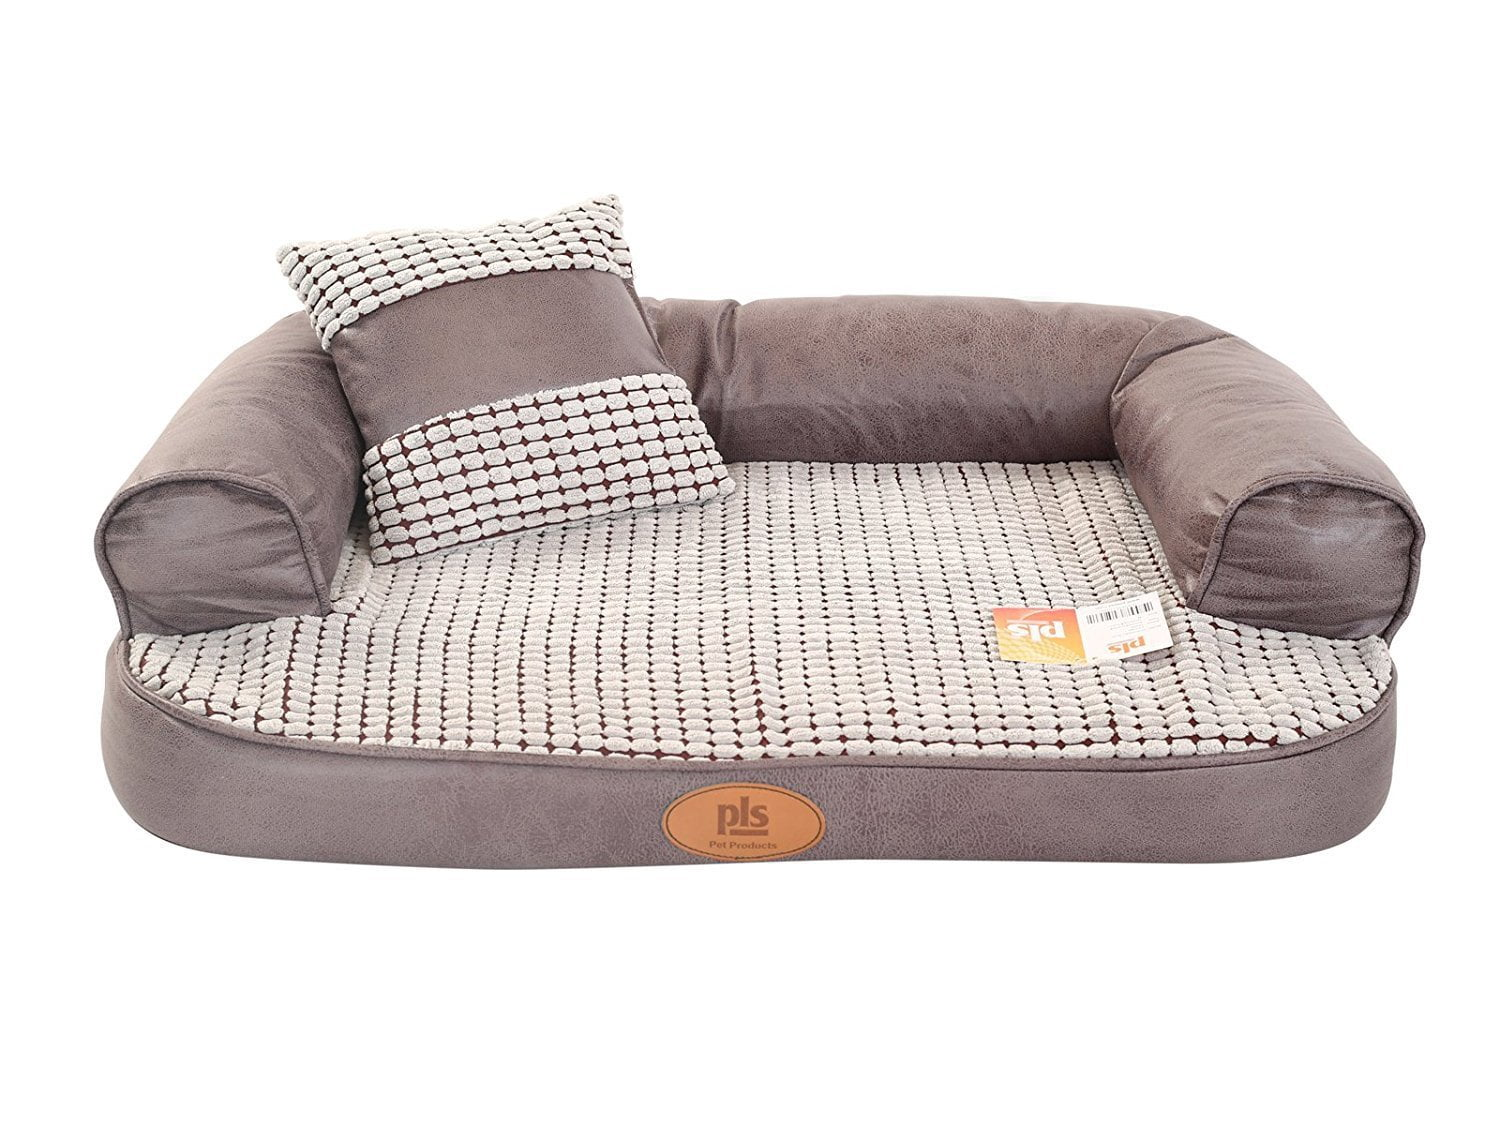 ... [NEW] Lounger Sofa, Firm Orthopedic Dog Bed, Foam Dog Bed, Dog ...